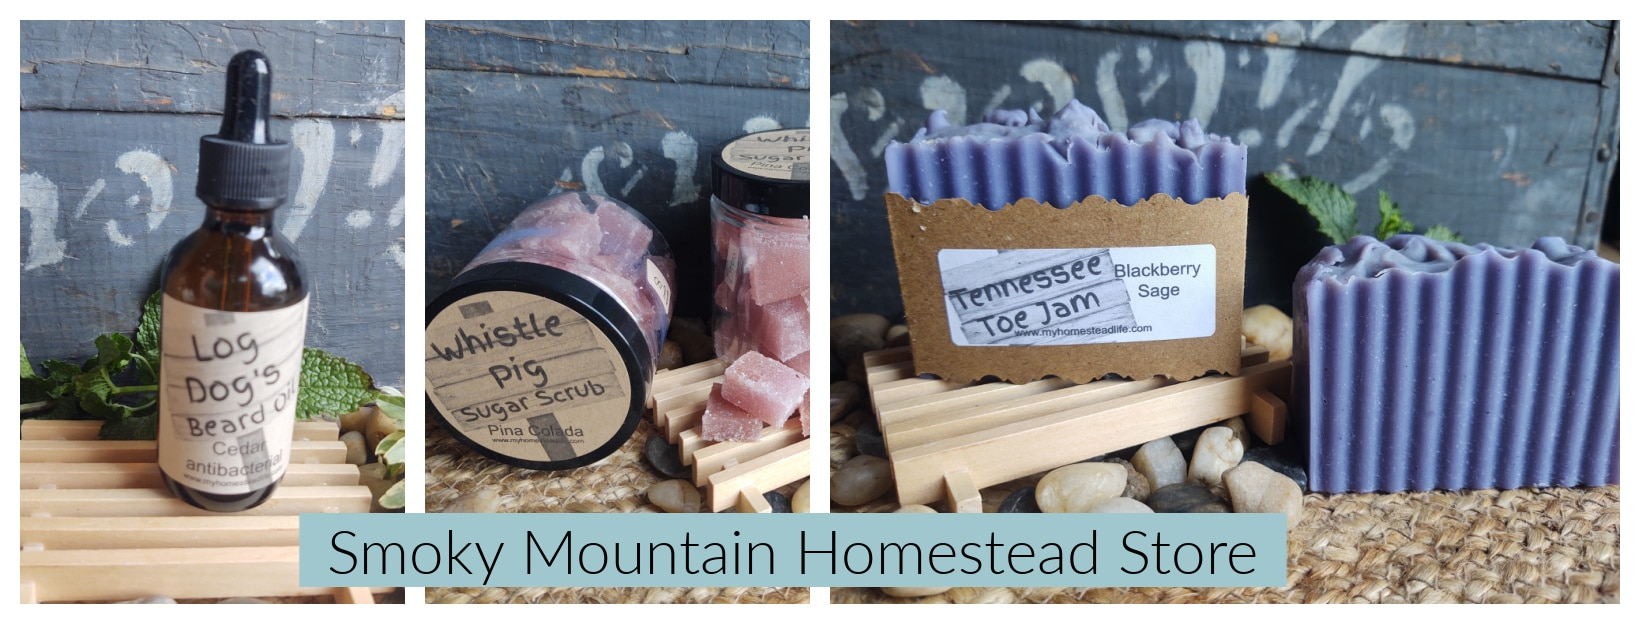 homemade-products-for-sale